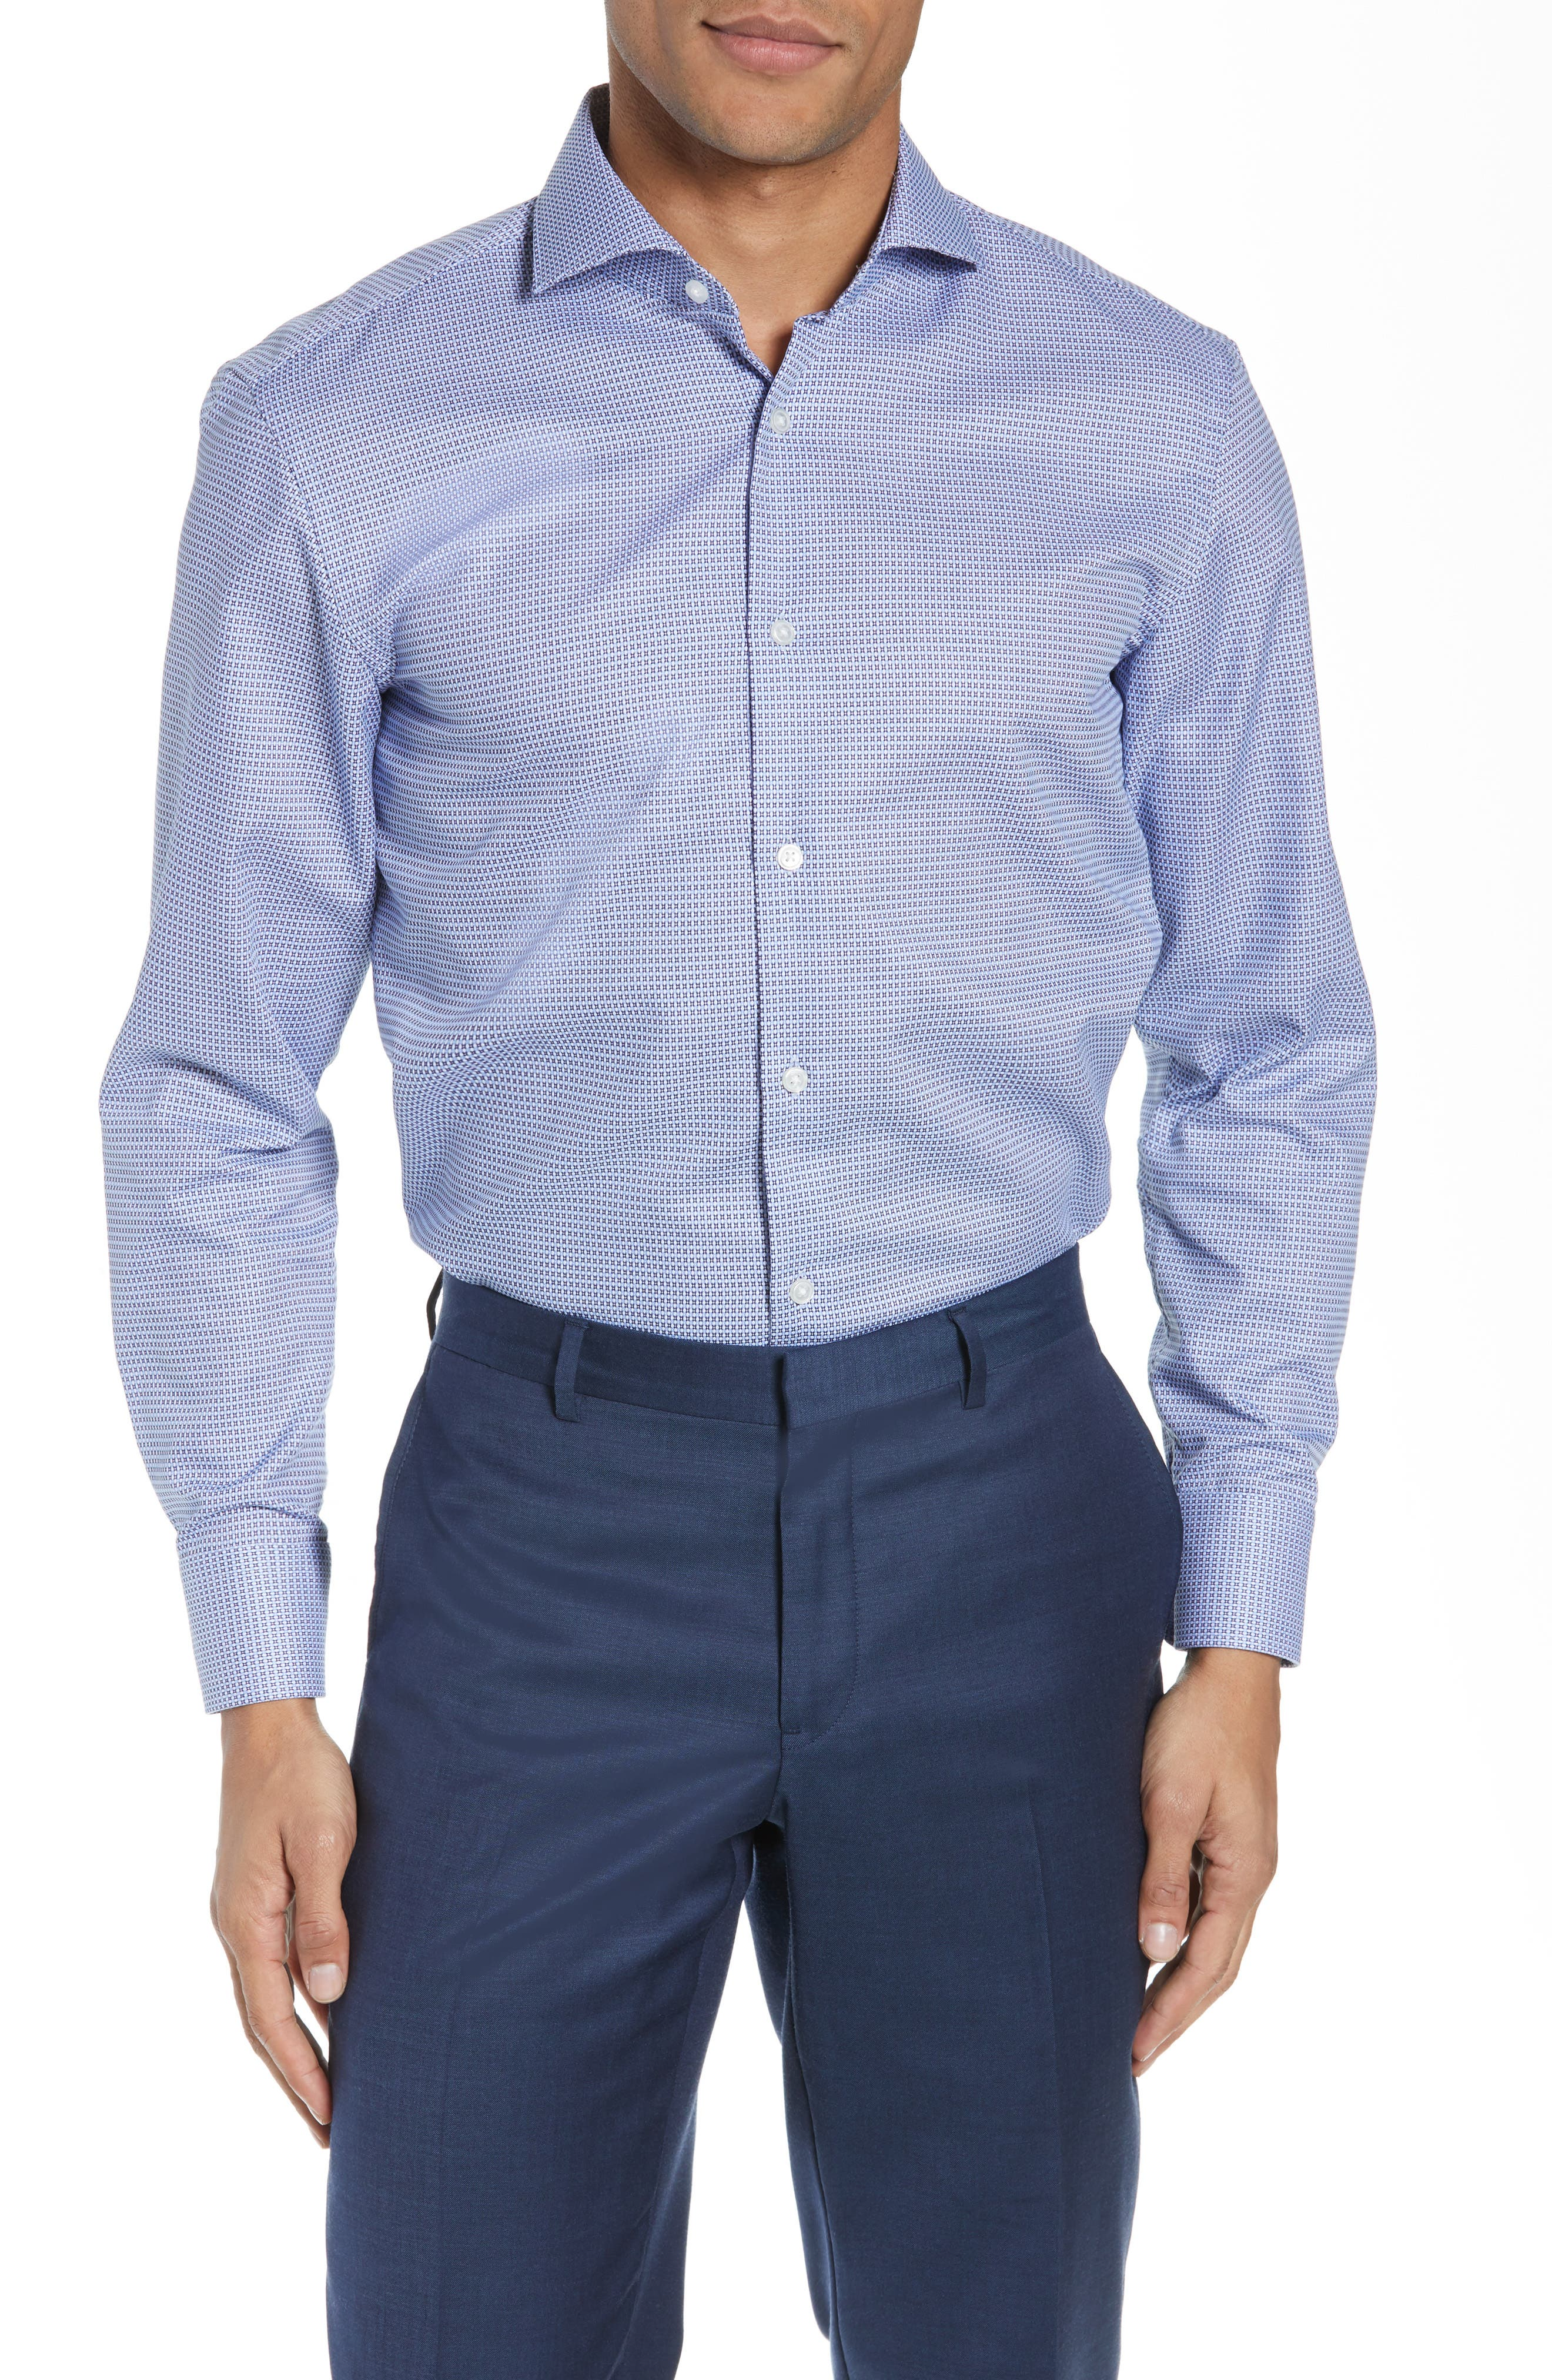 Boss Dresses MARK TRIM FIT GEOMETRIC DRESS SHIRT